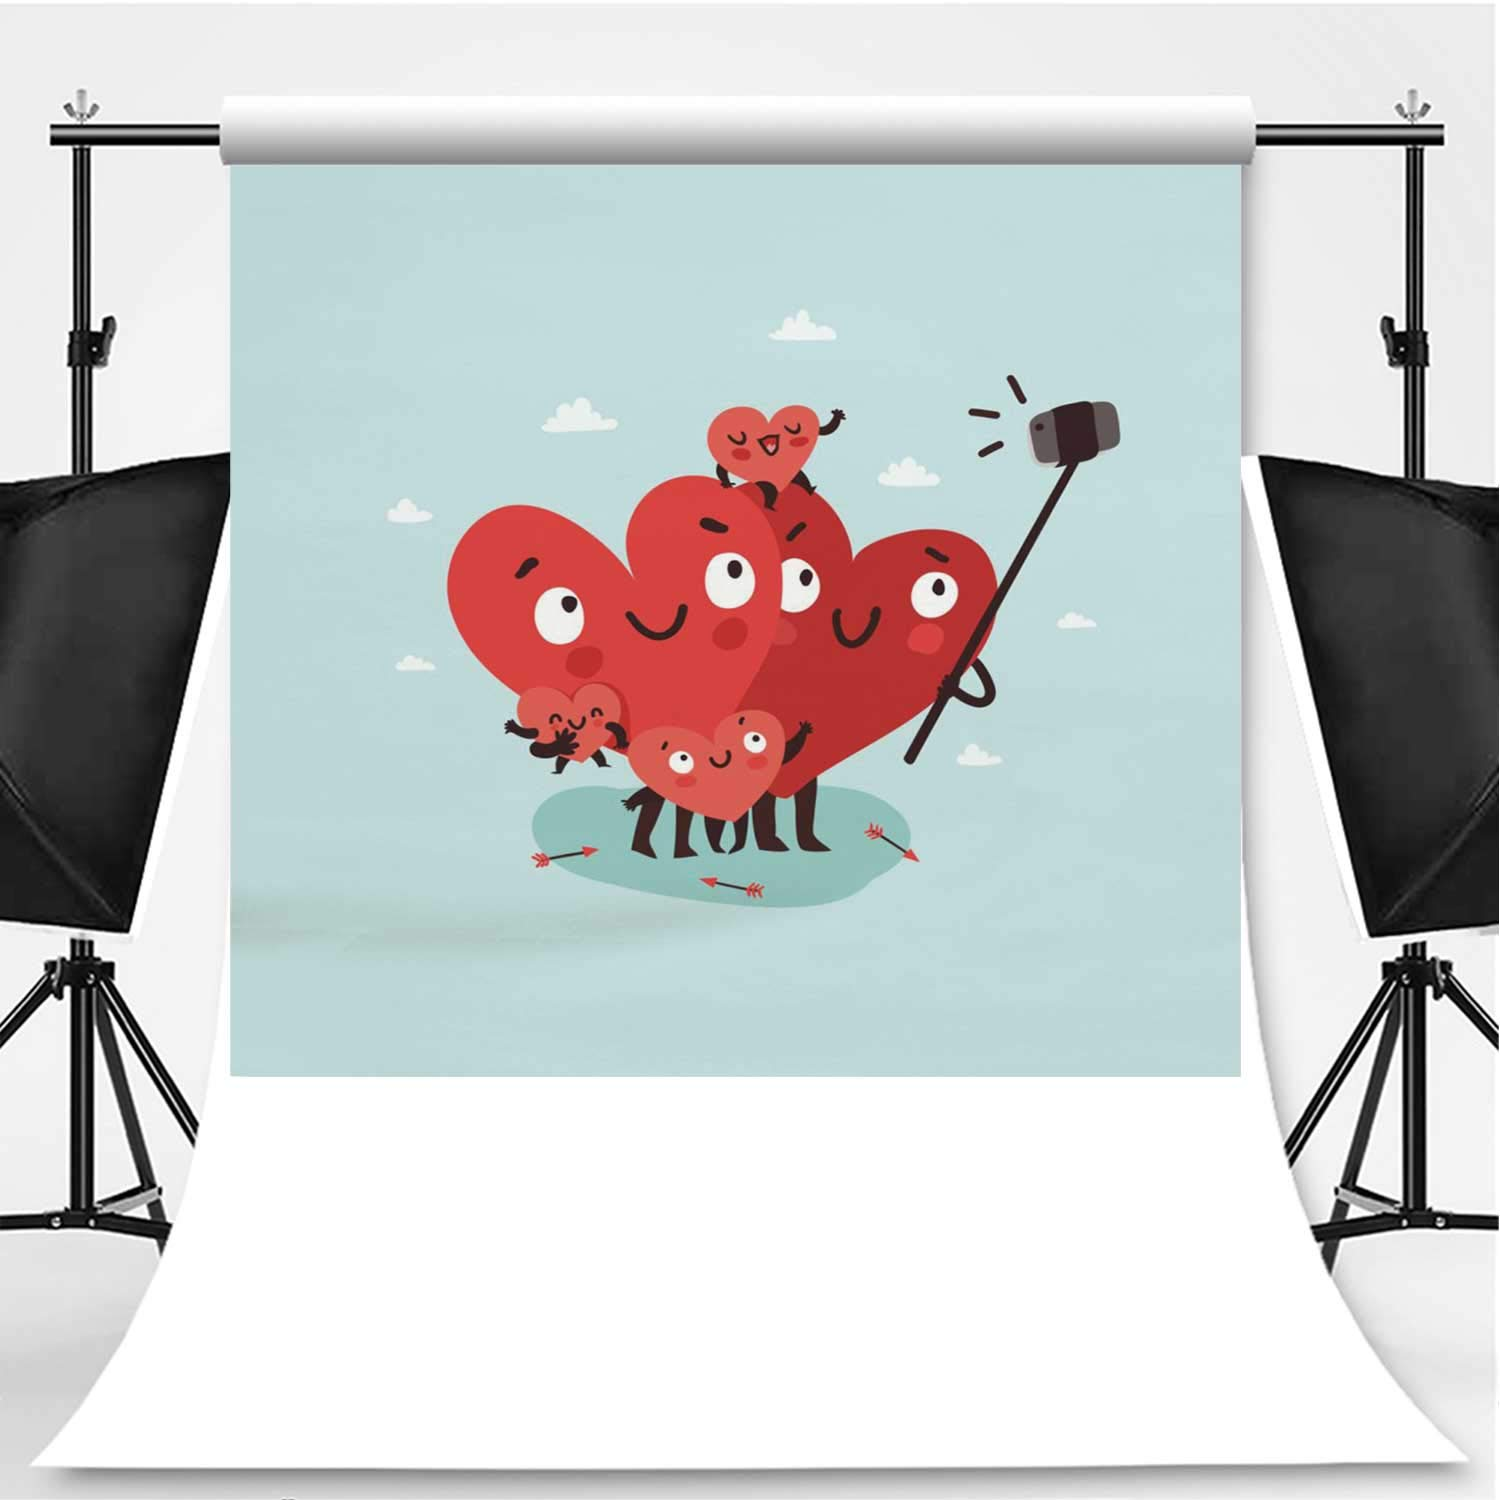 Family Selfie Theme Backdrop Photography Backdrop for Pictures,Hearts Characters as Symbols of Love and Family Making Selfie with Smartphone and Selfie Stick,6.5x10ft by YOLIYANA